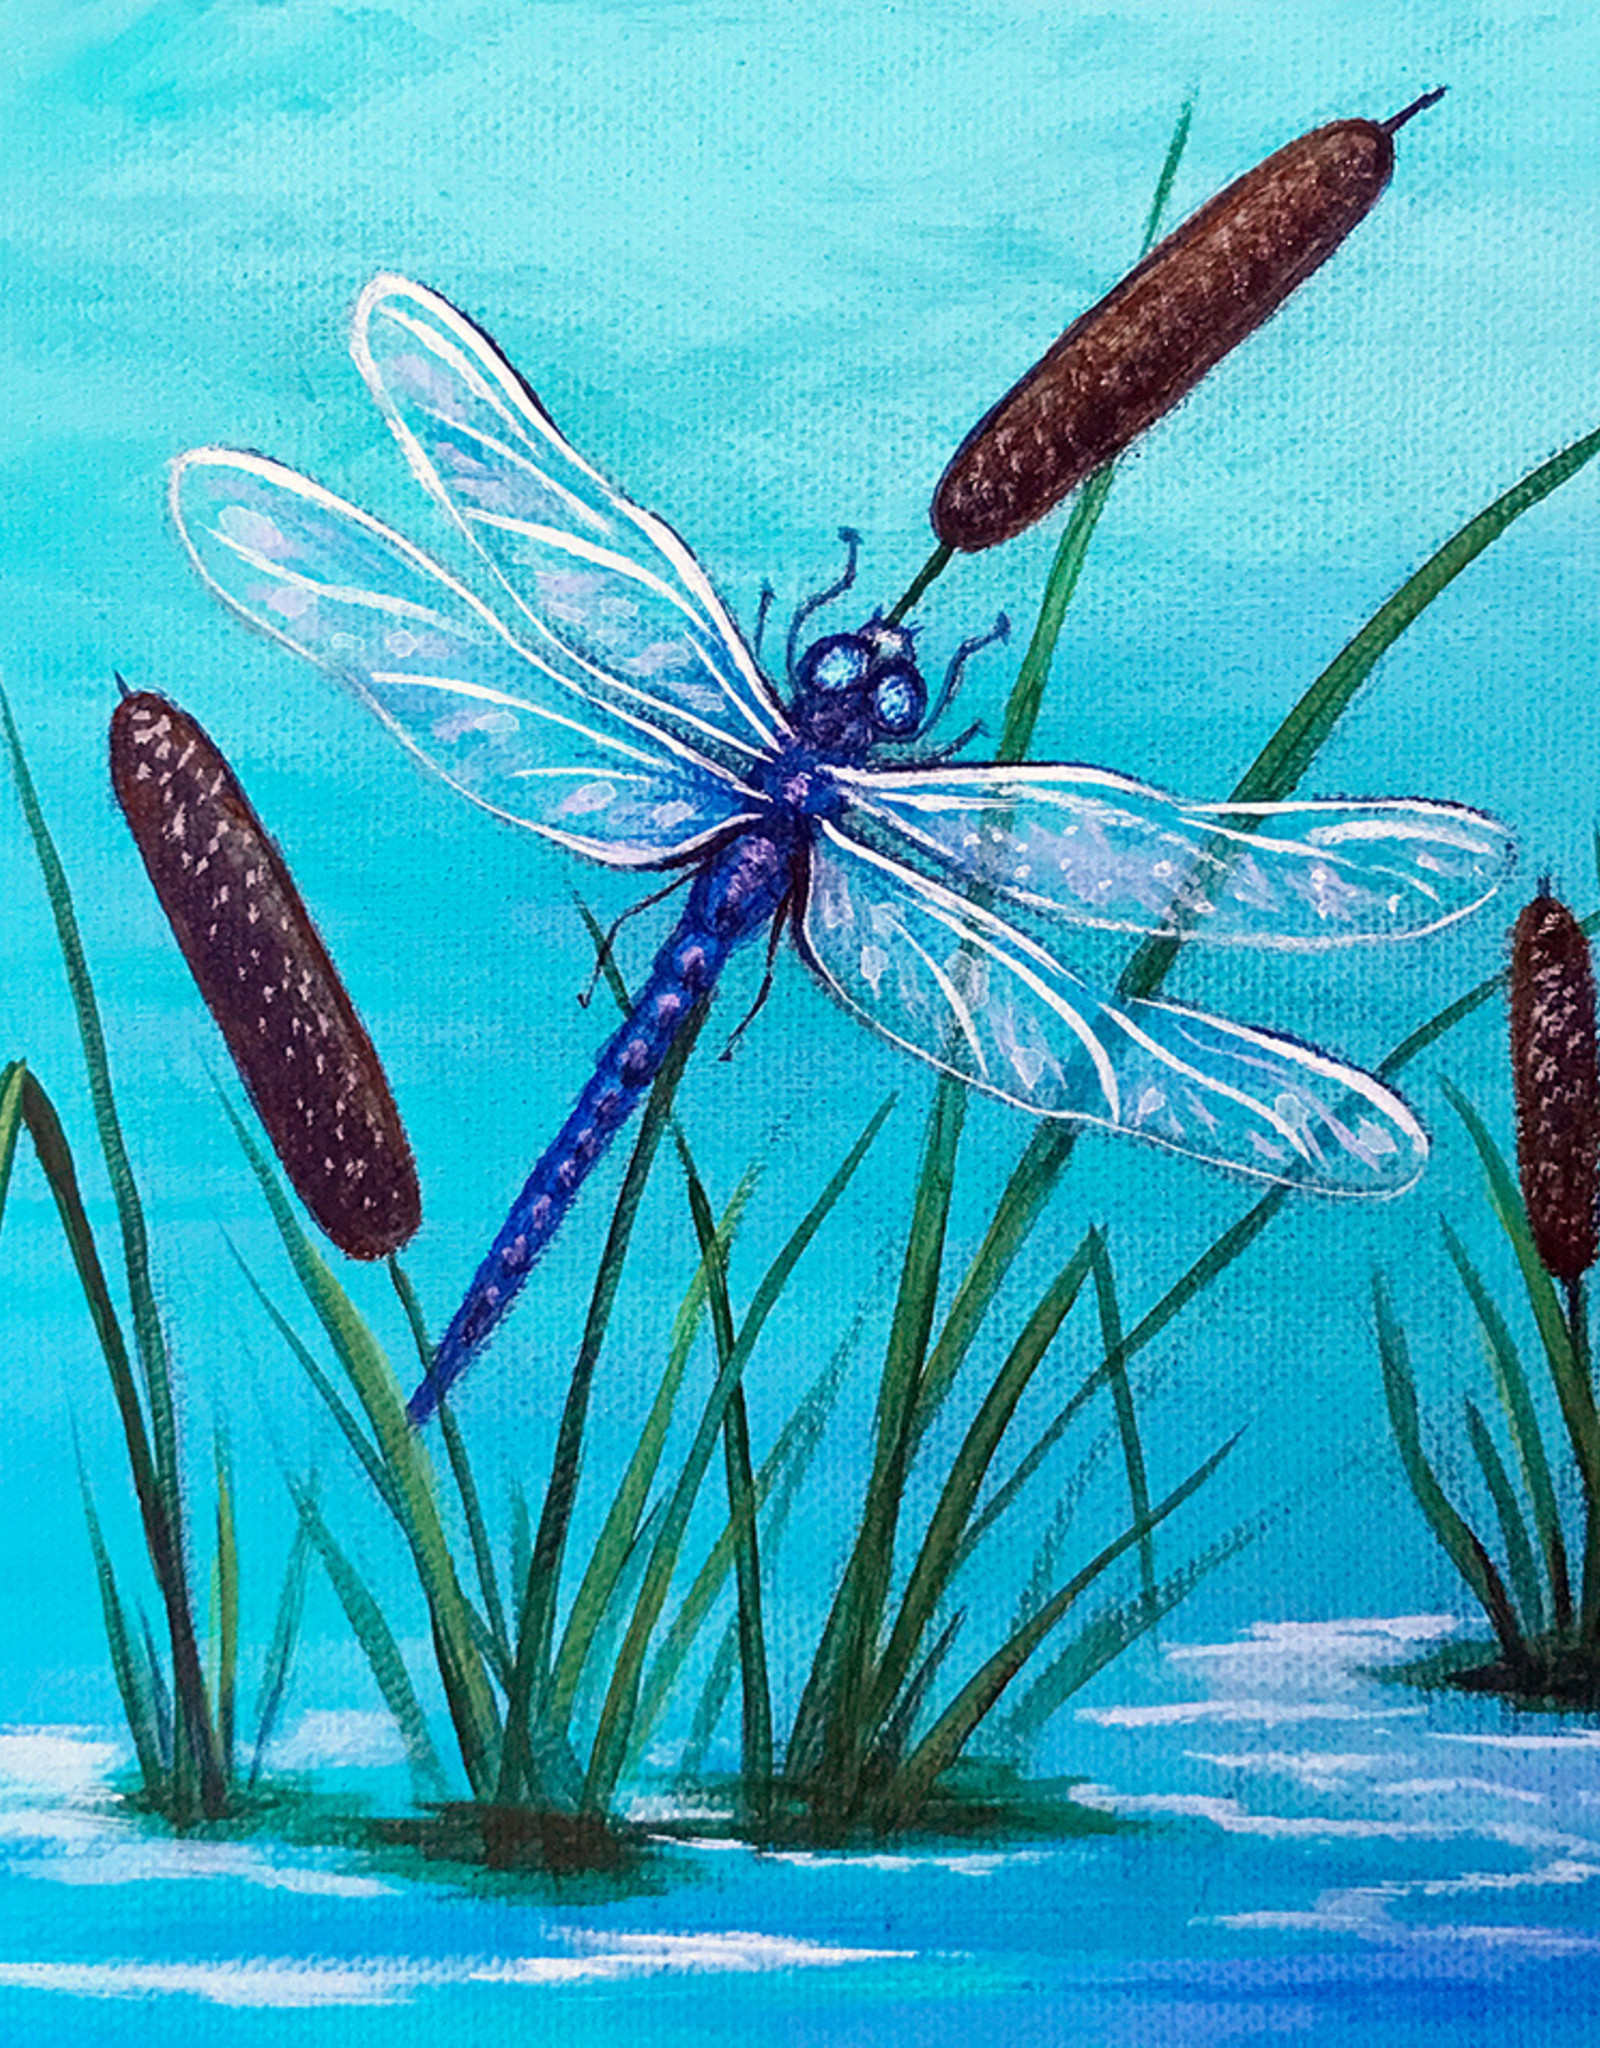 Tamara S Acrylic Art Class Dragonfly  Wed March 31 11:00 am to 1:00 pm